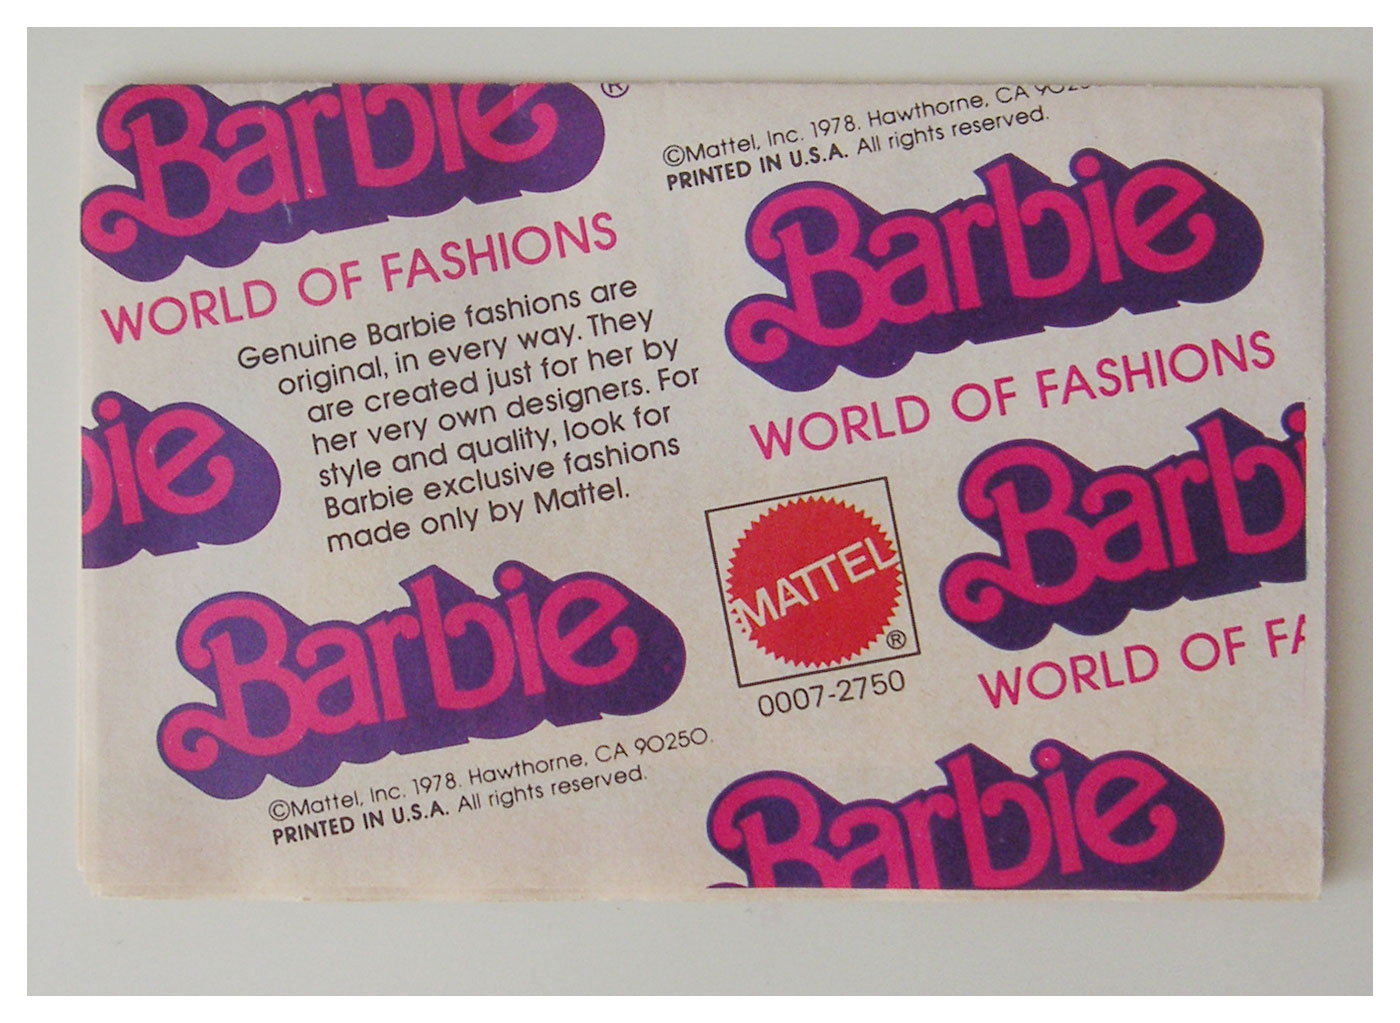 1978 World of Fashions booklet